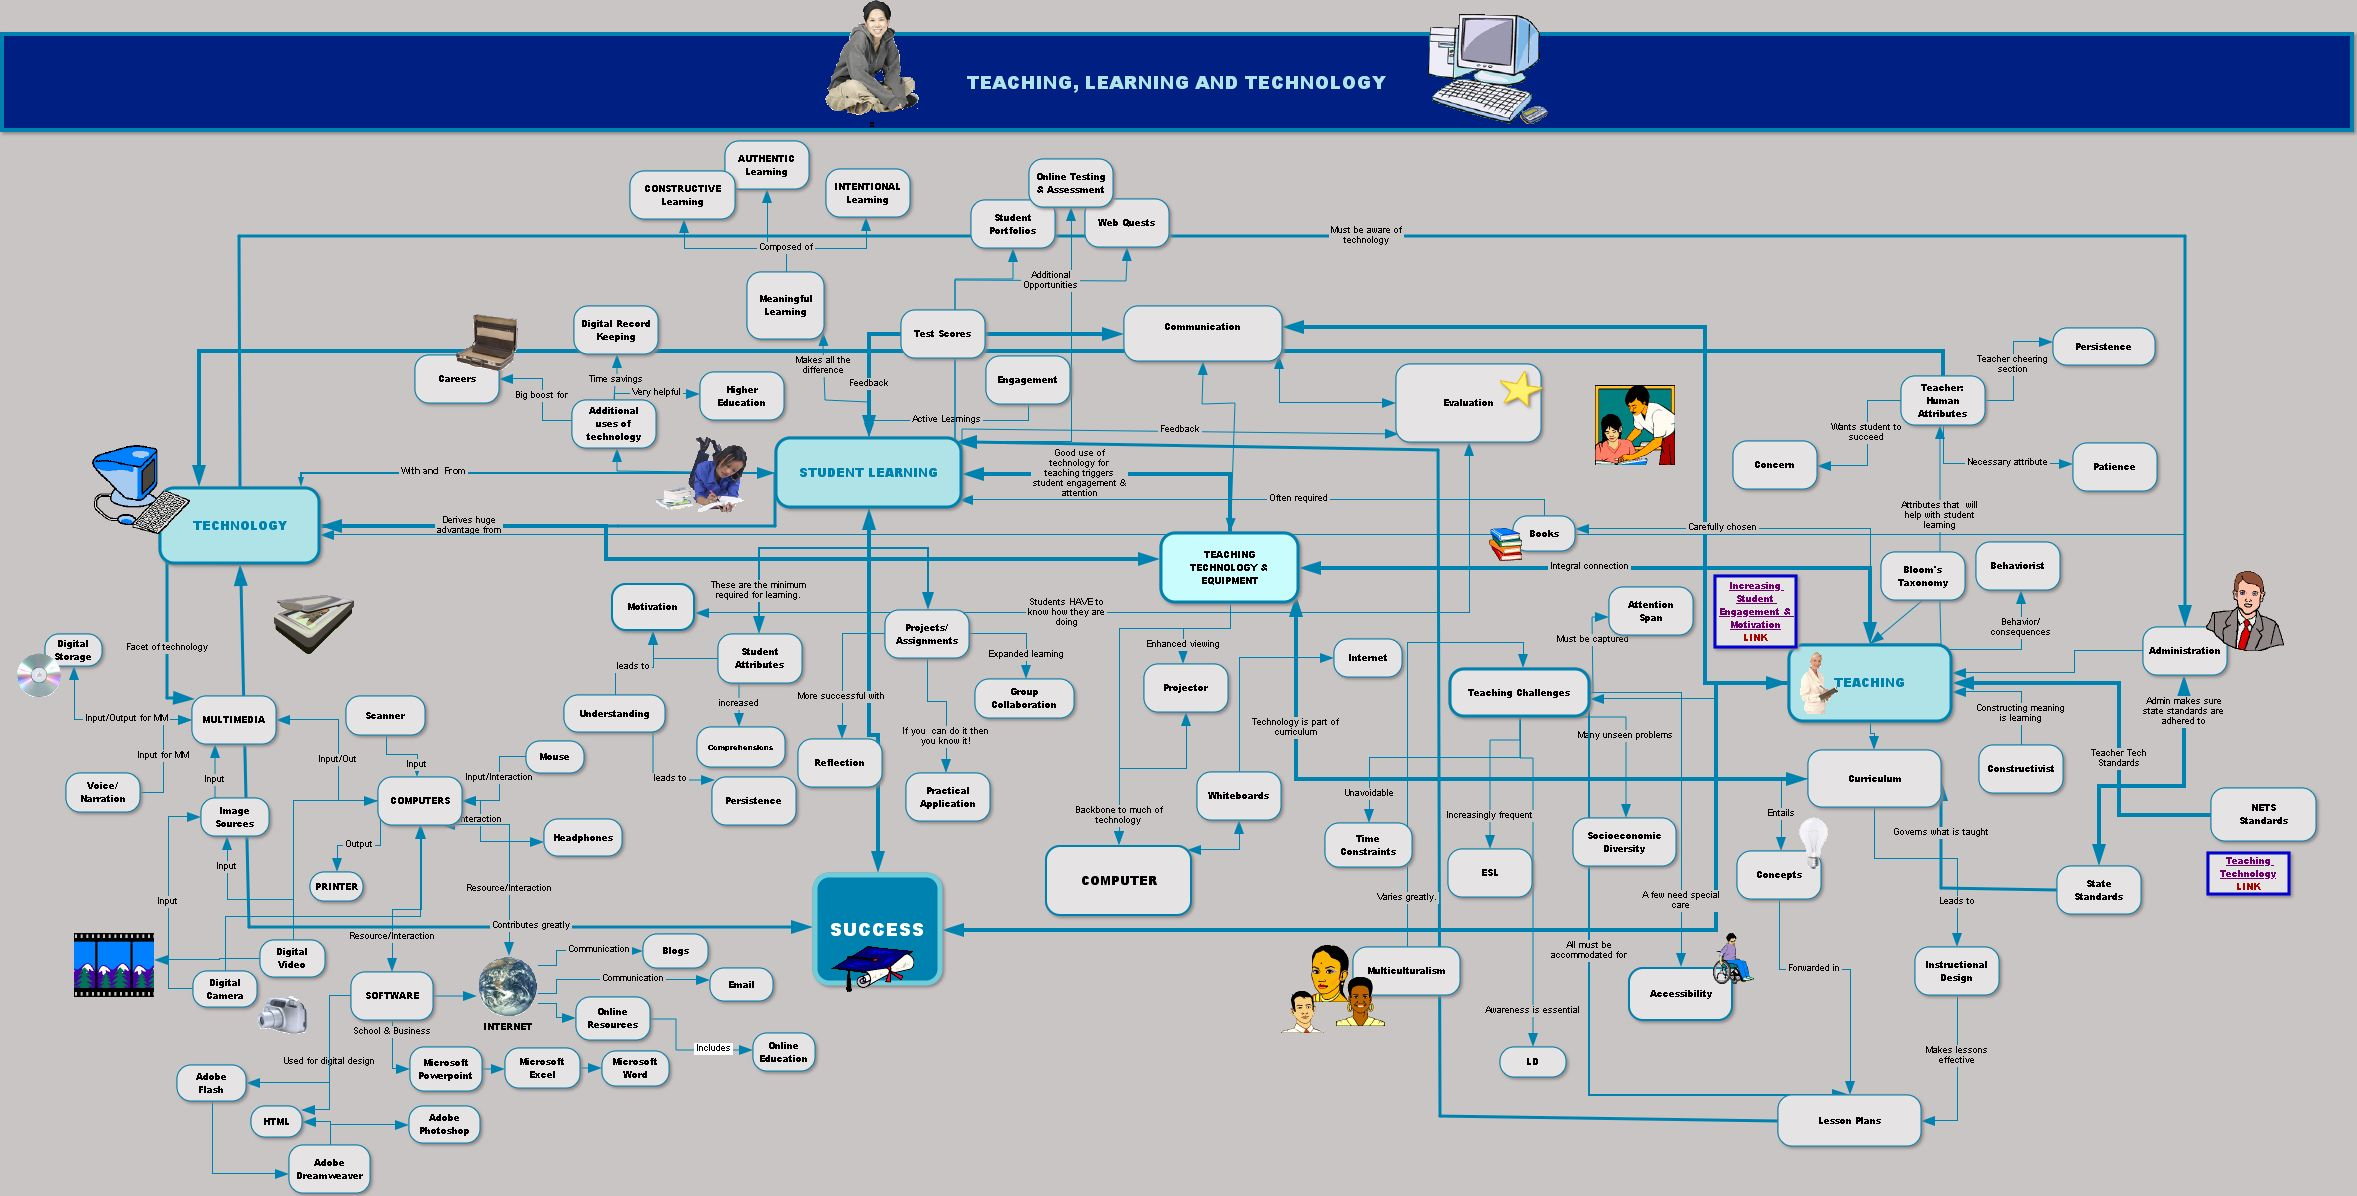 concept map showing relationship between learning theories and technology integration